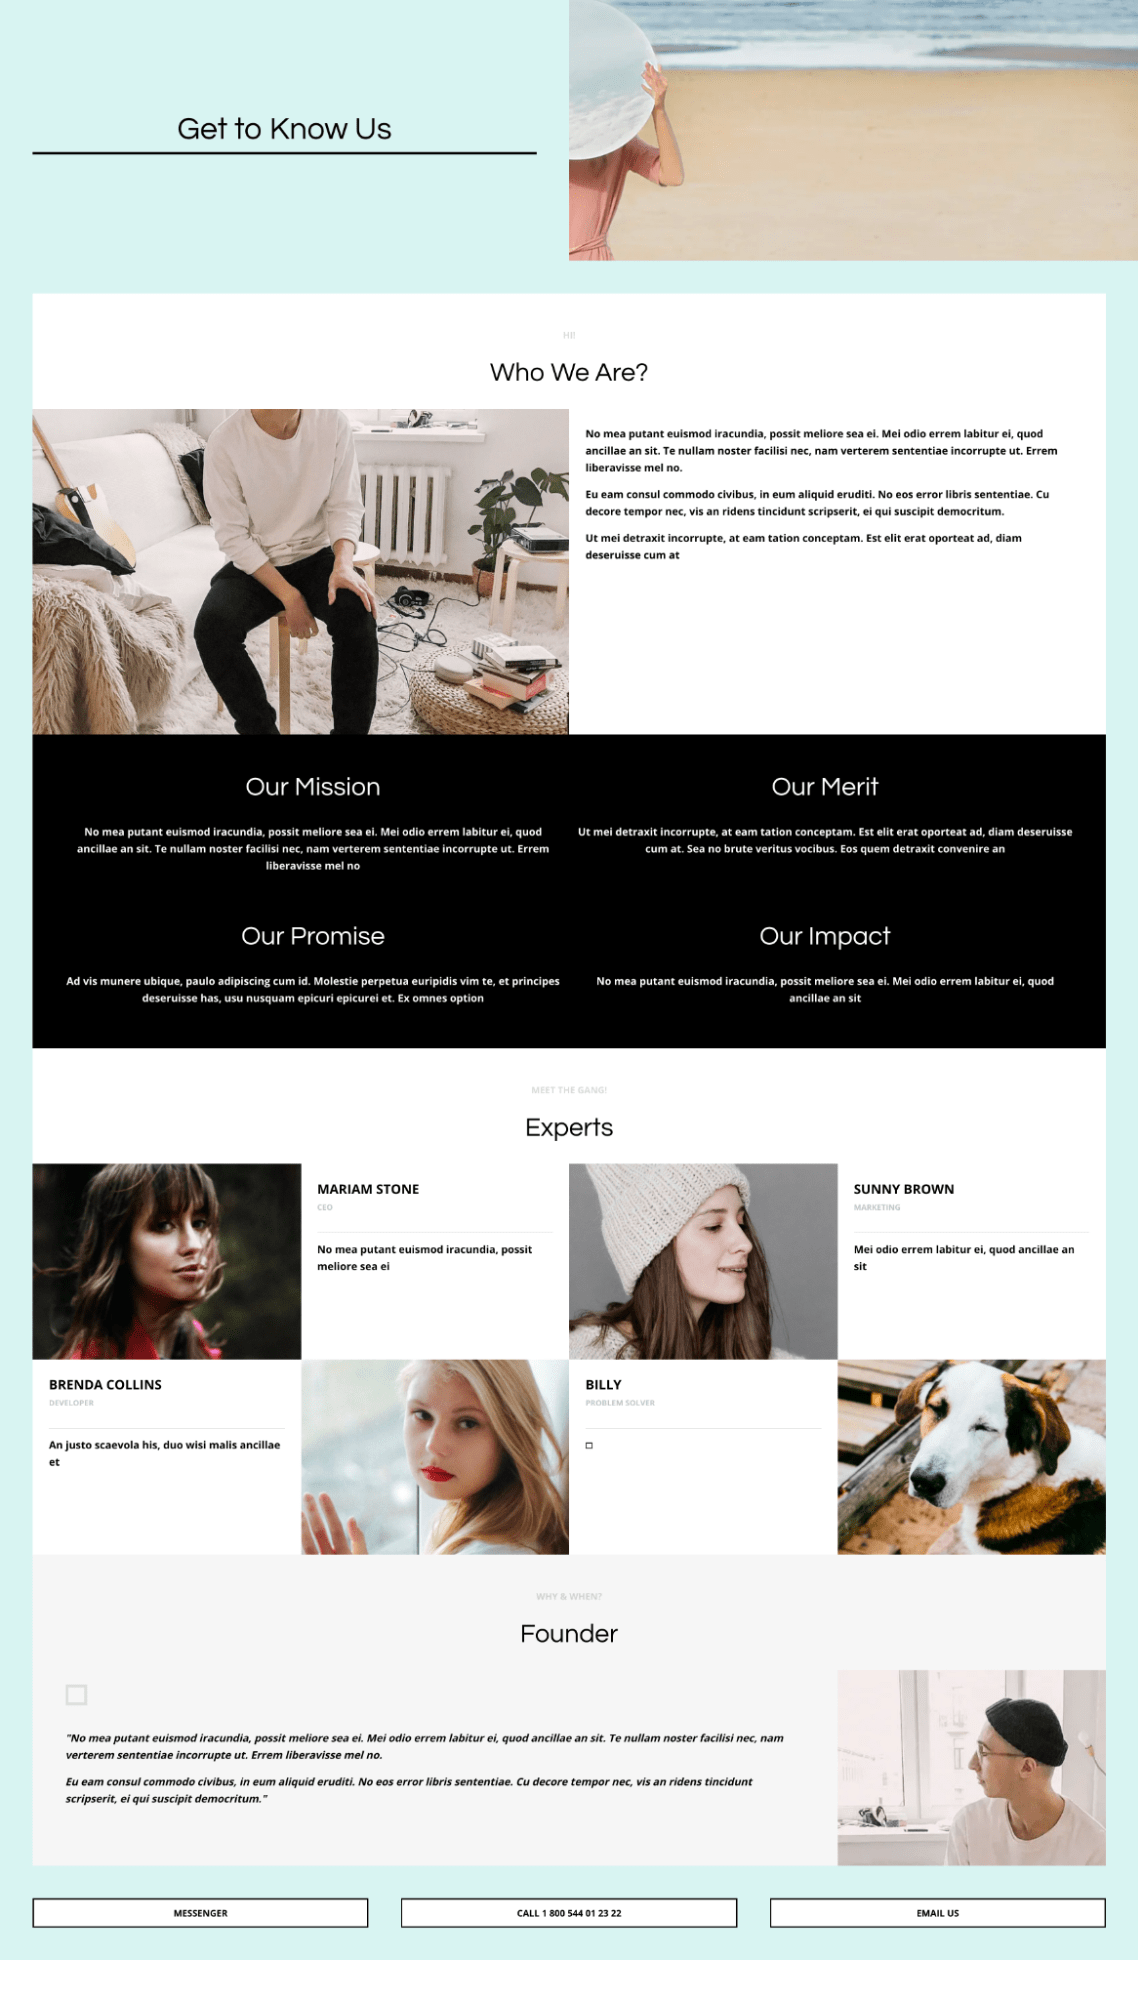 get to know us about us page template shogun